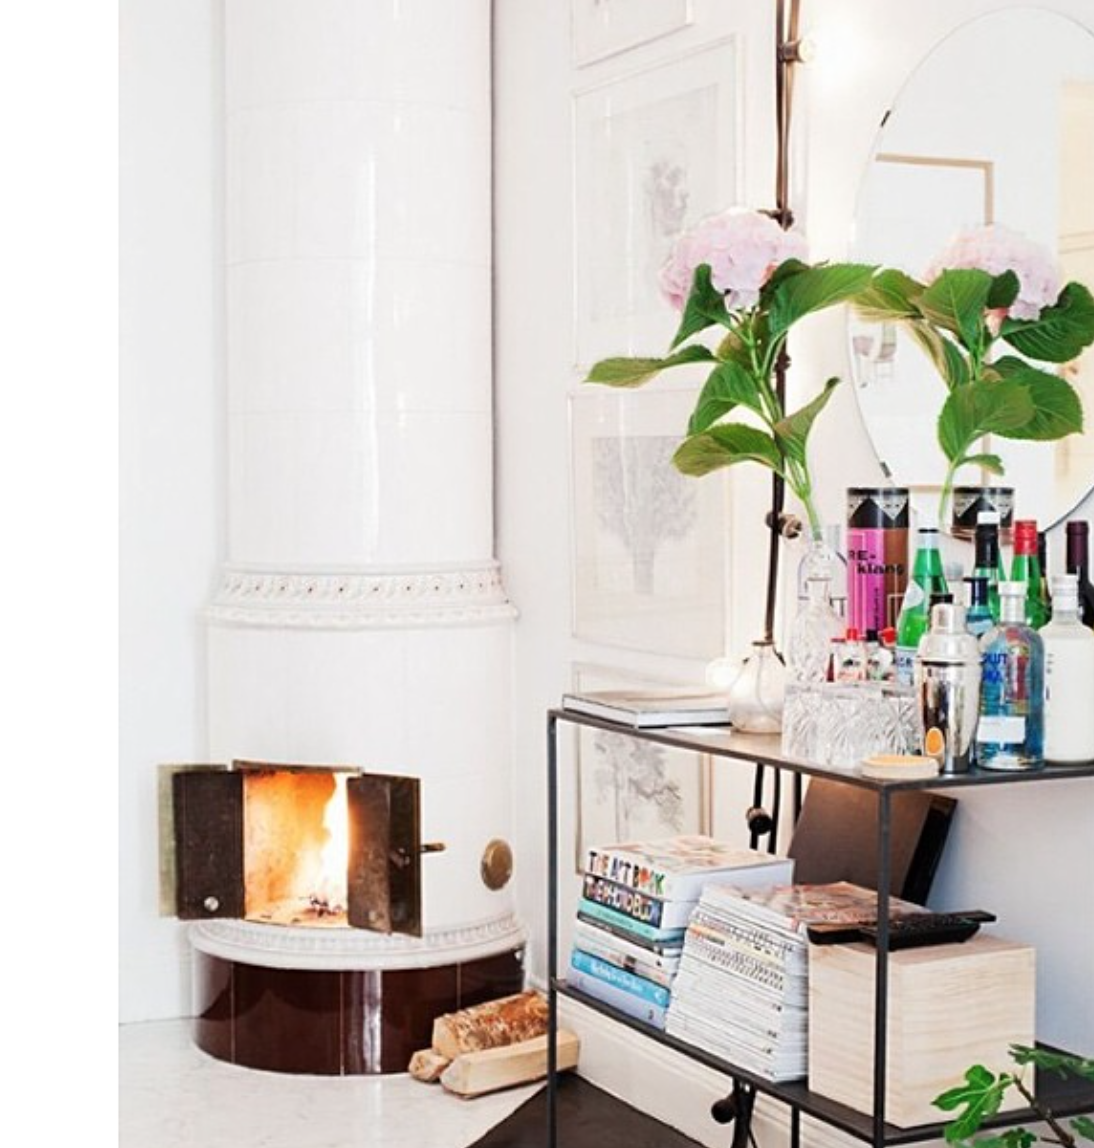 On The Blog : Bart Cart Style. Love this simply styled cart in perfect position next to the open fireplace.  Read the full post  here!  Image: Pinterest